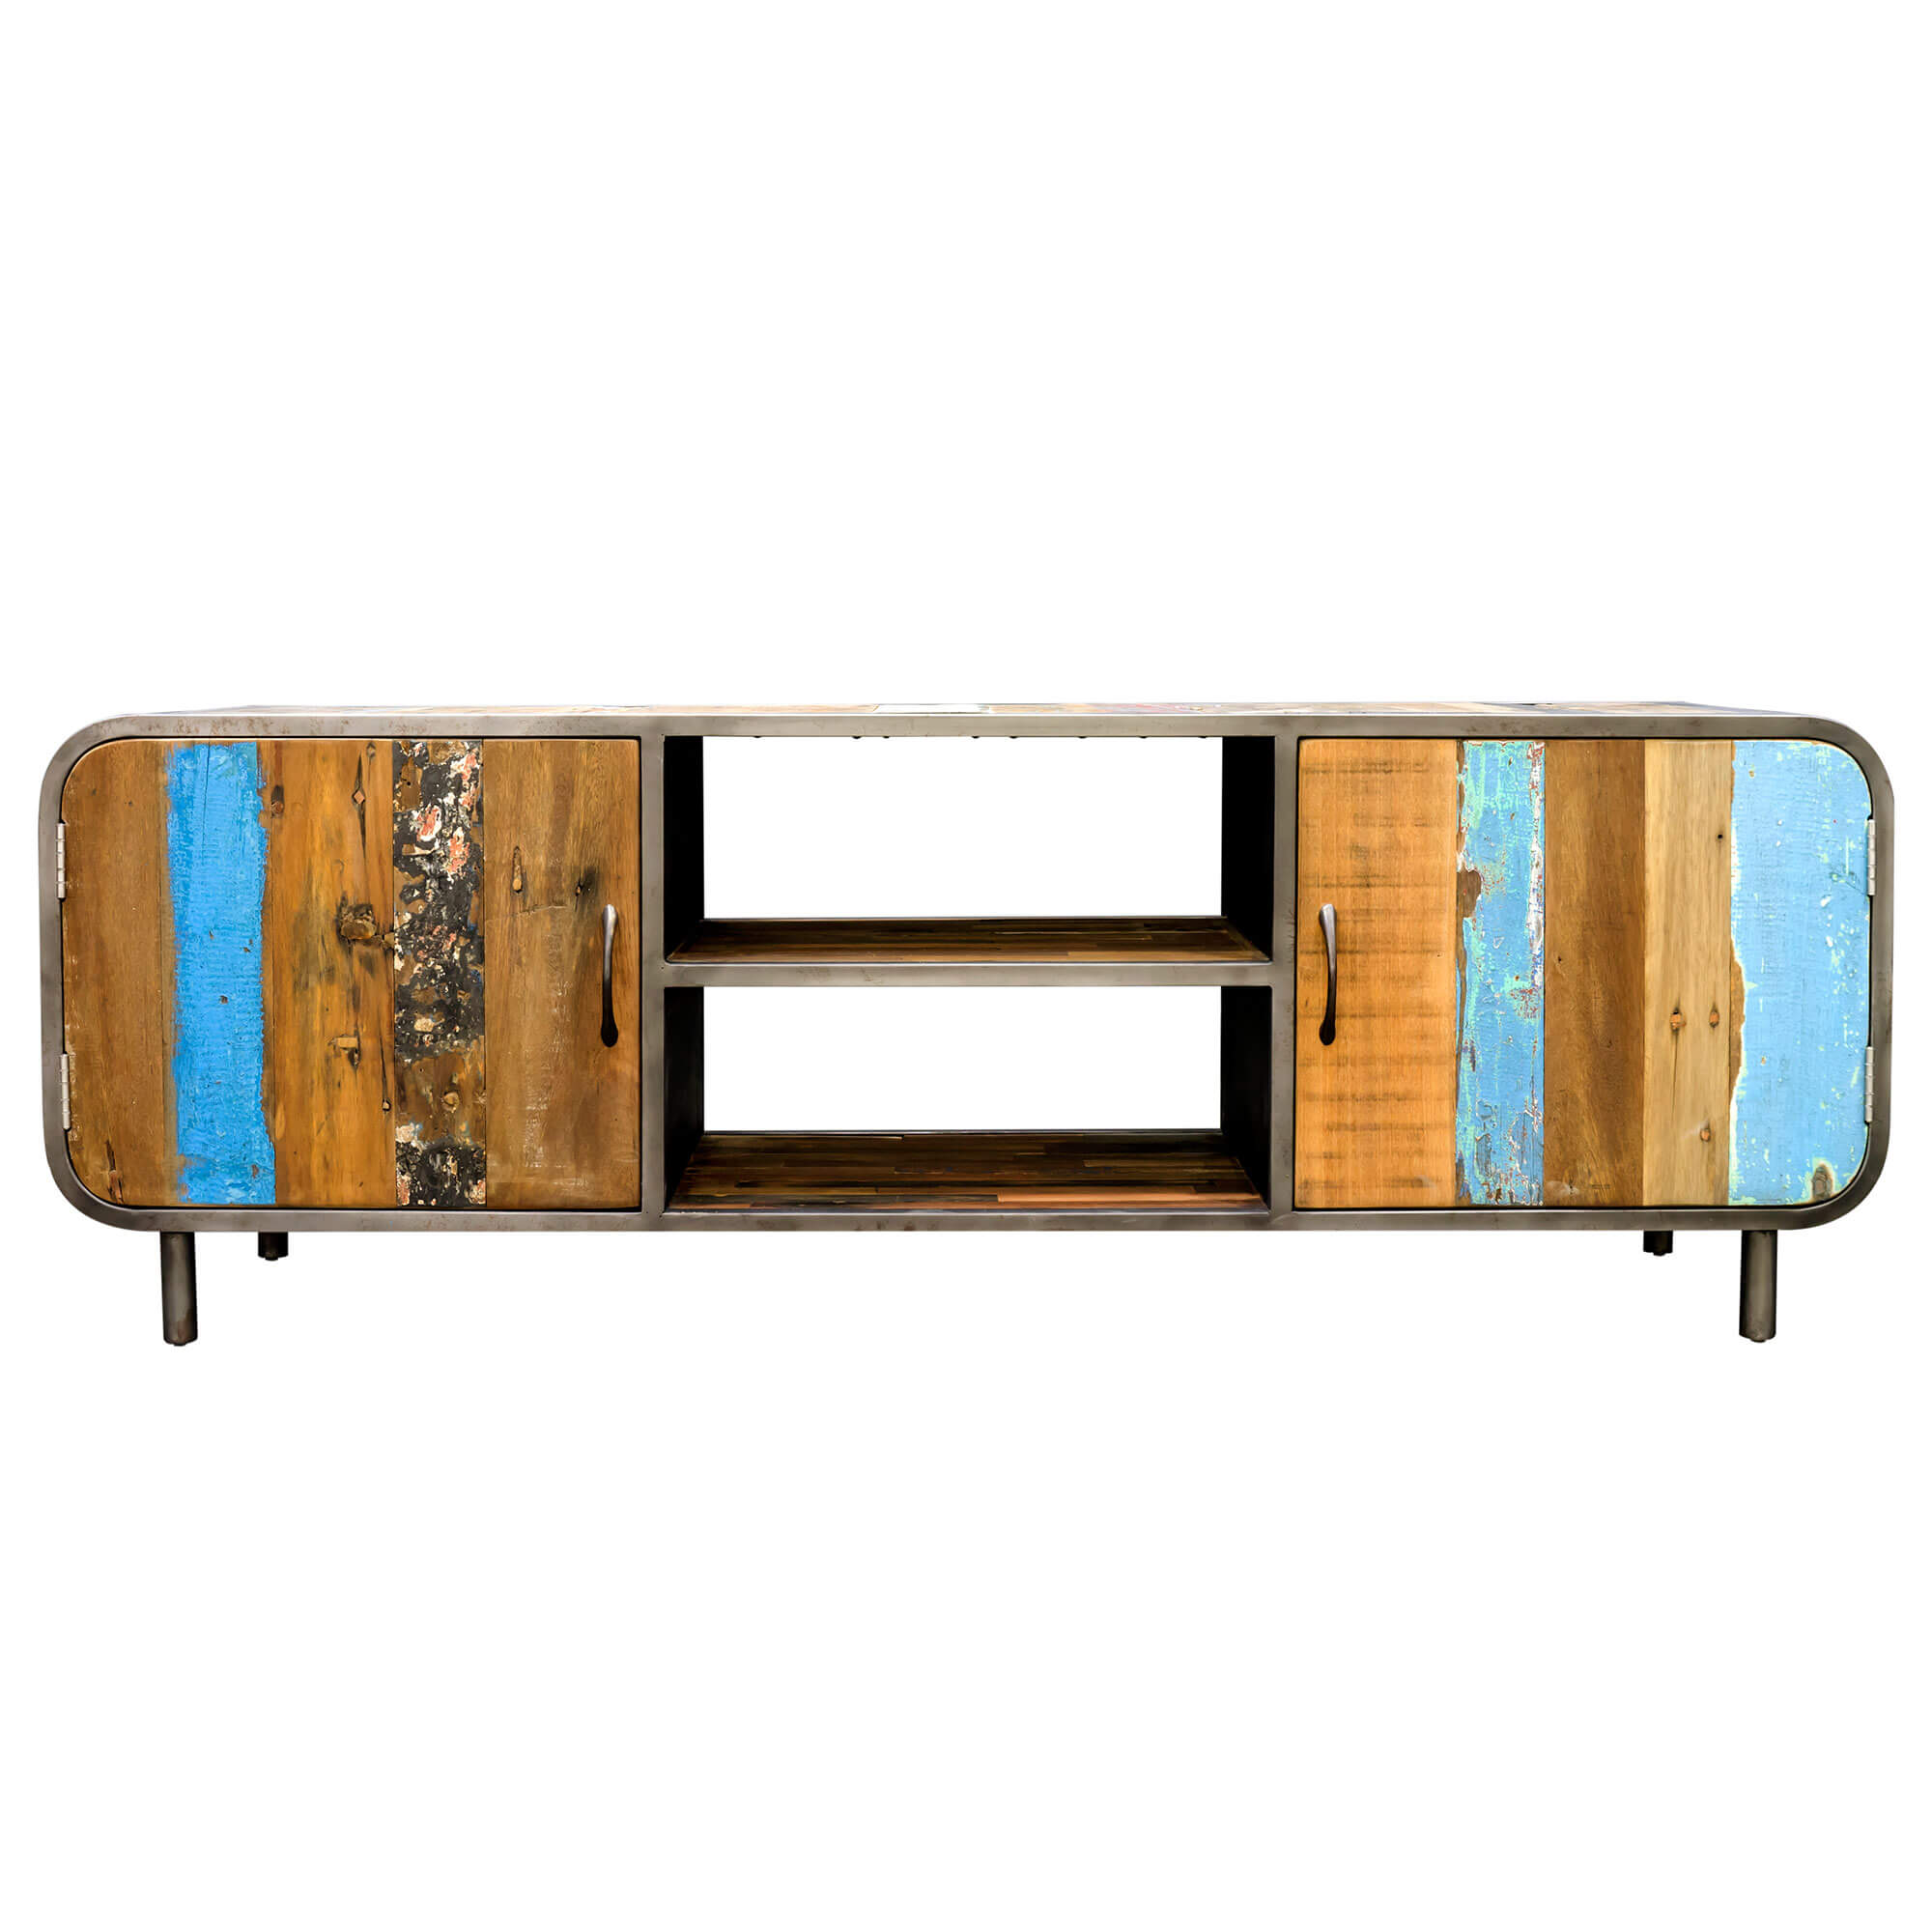 Seaside Retro Media/TV Unit with Doors | Furniture Supplies UK